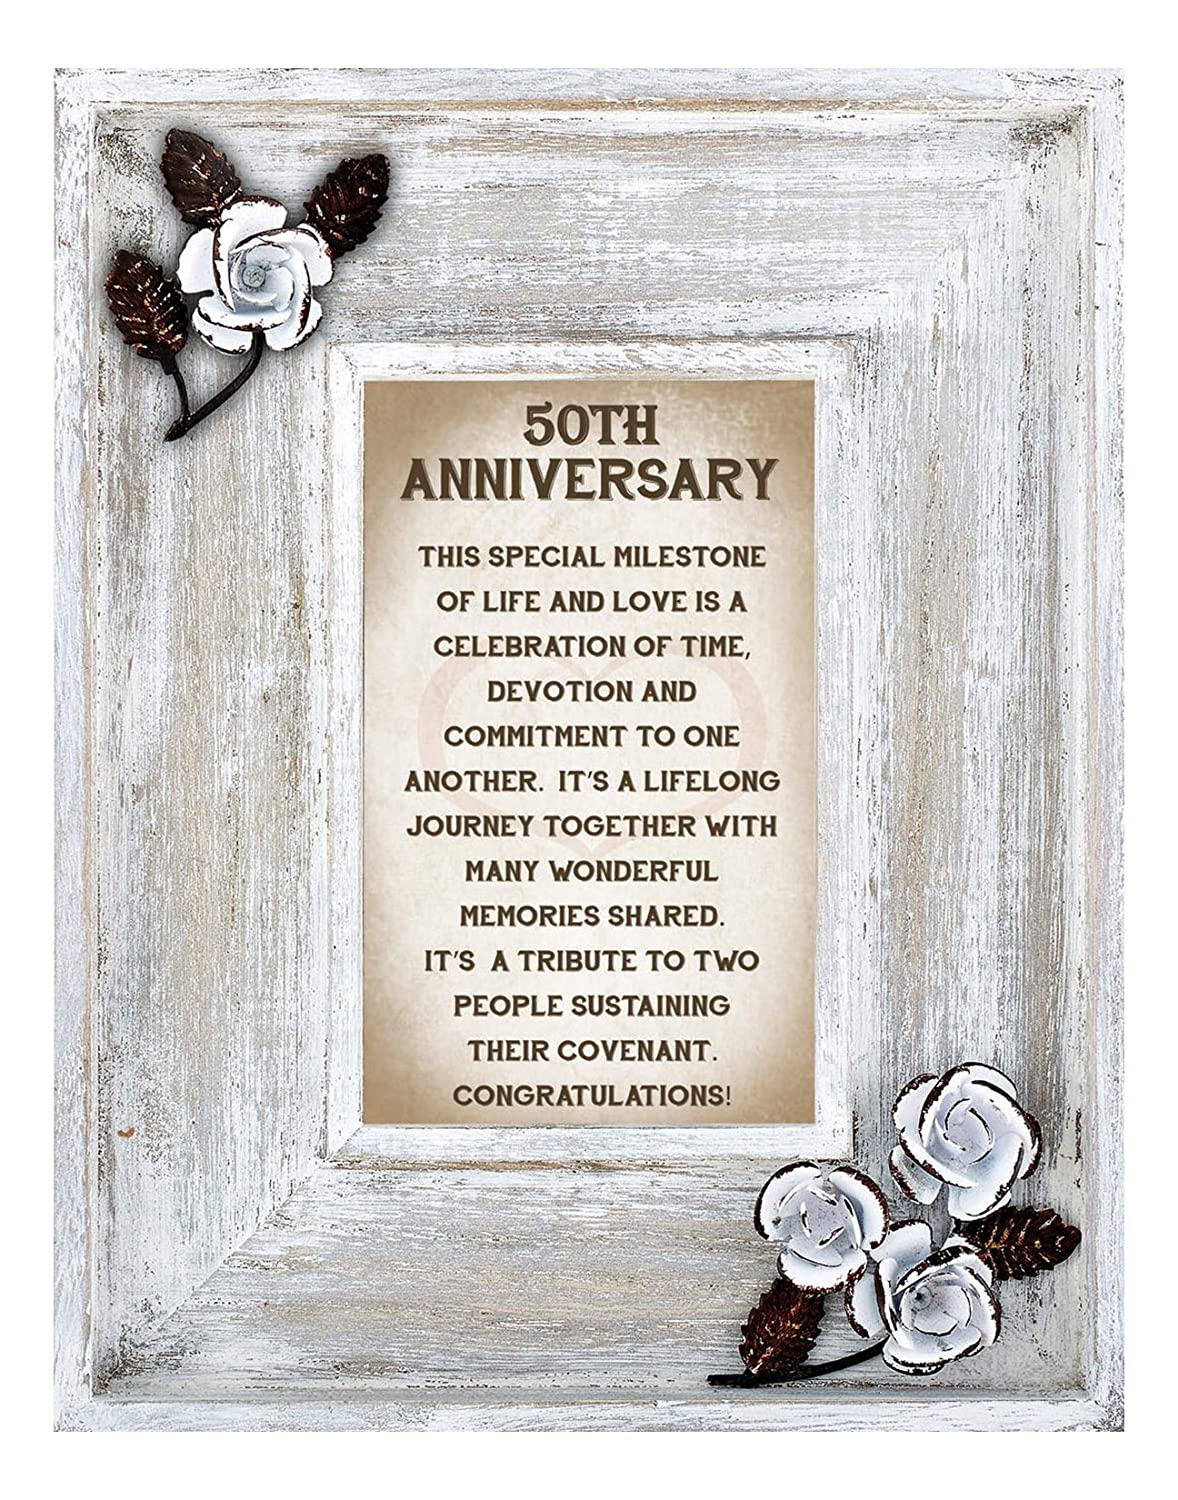 LoveLea Down Home Collection Tabletop Frame, 25th Anniversary CB Gift -Parent